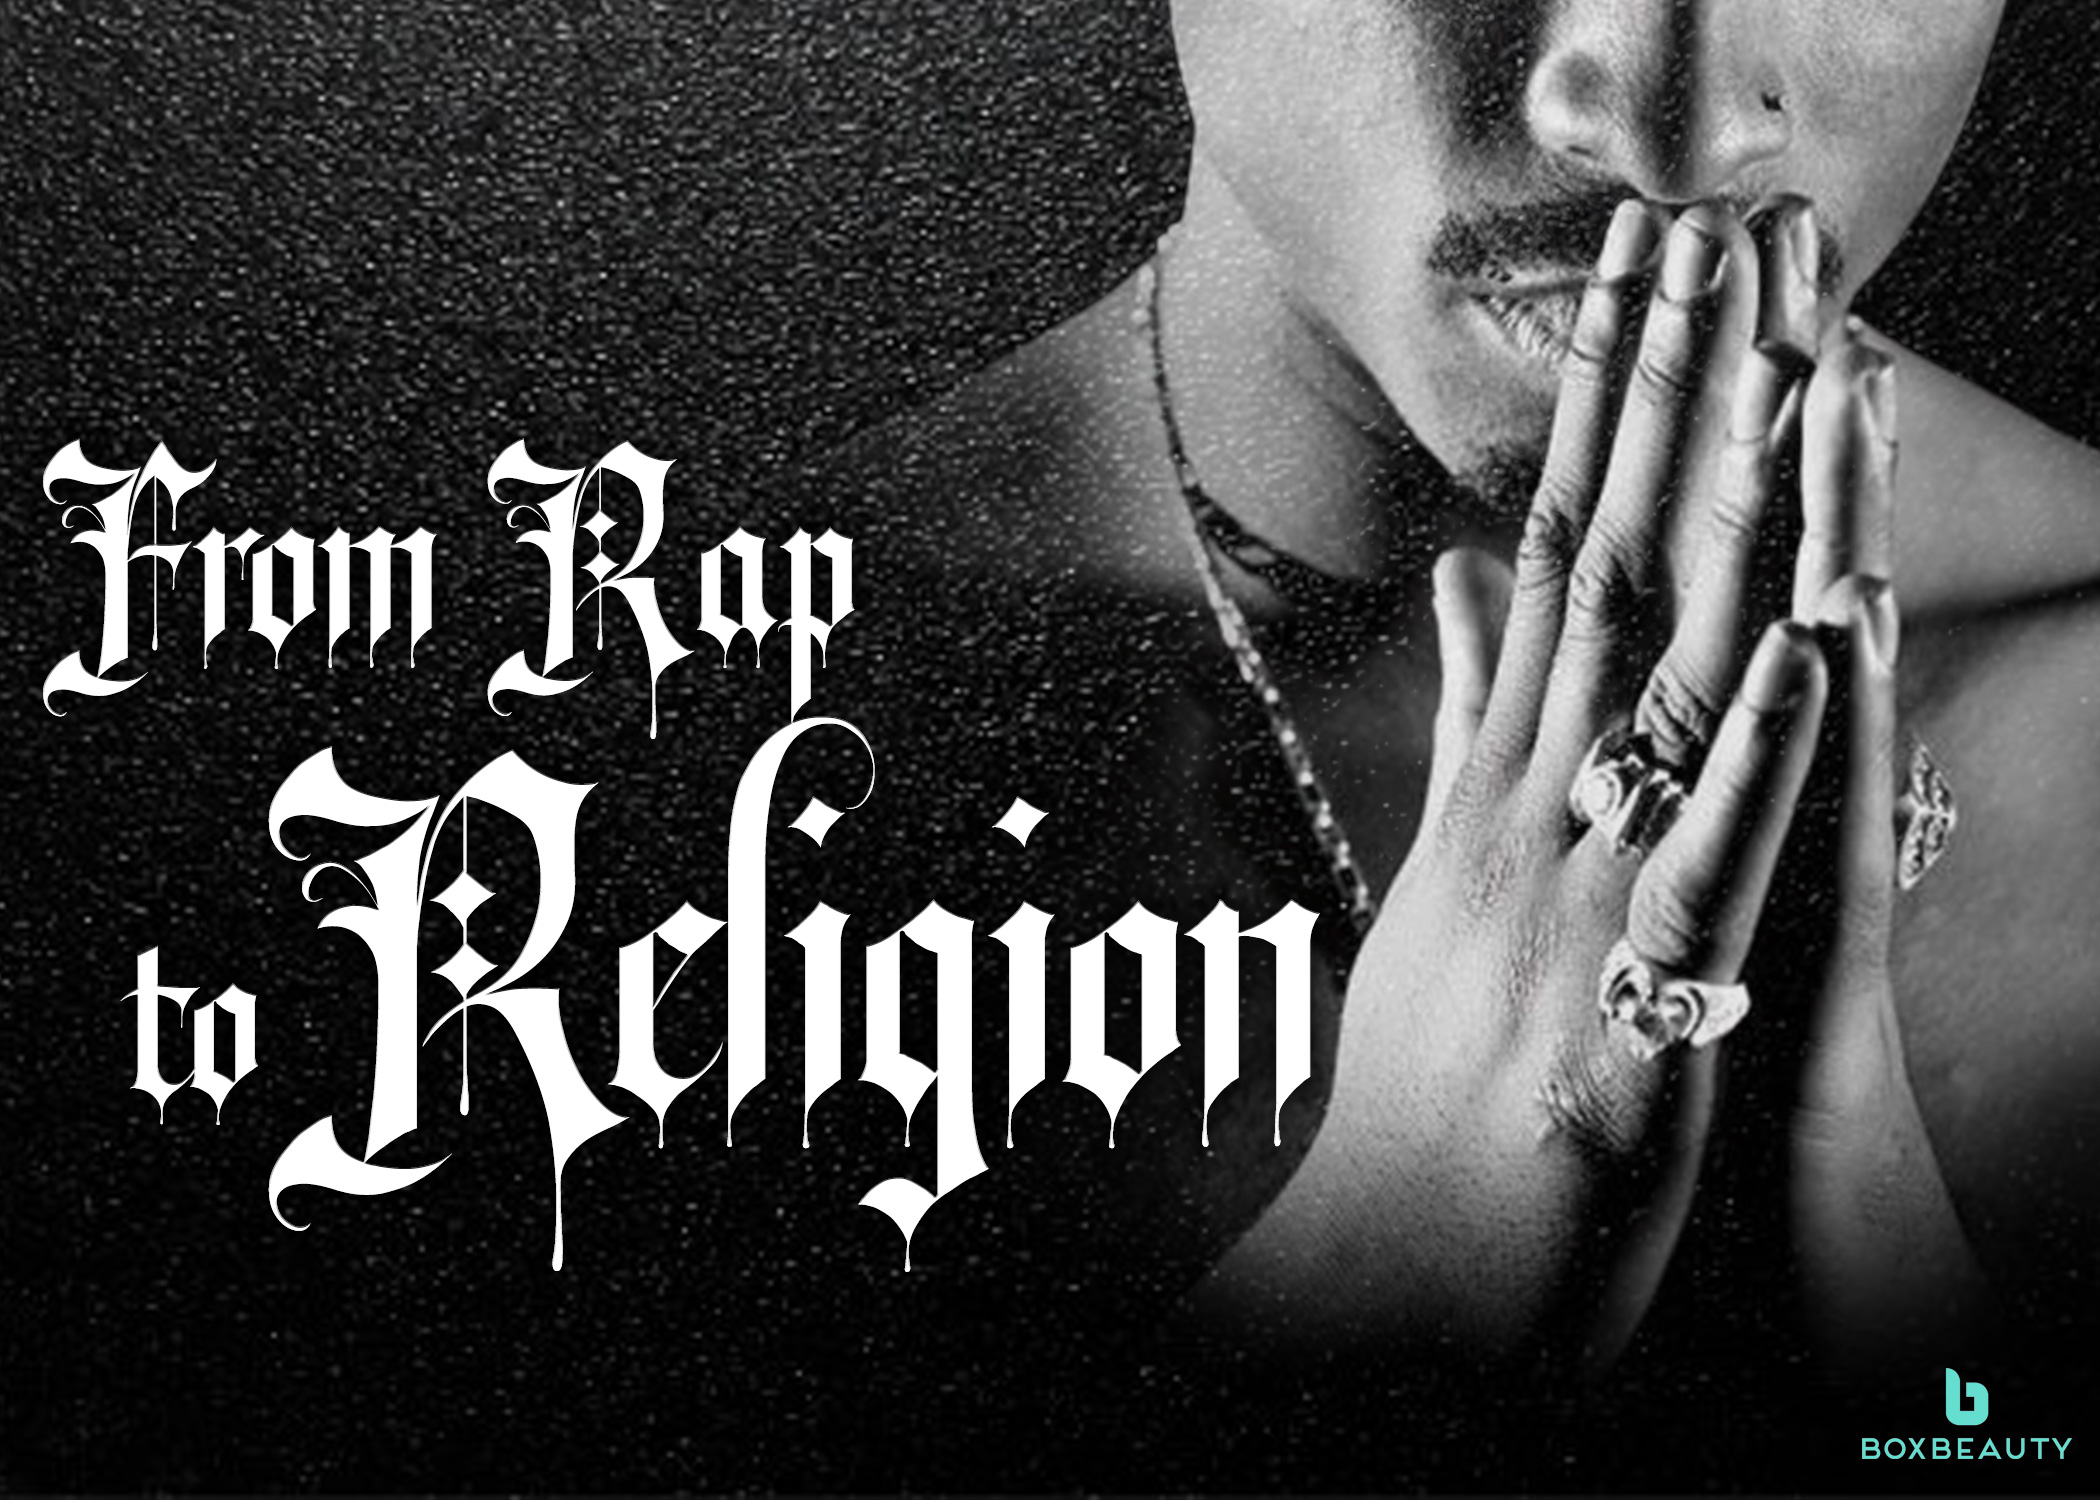 From Rap to Religion